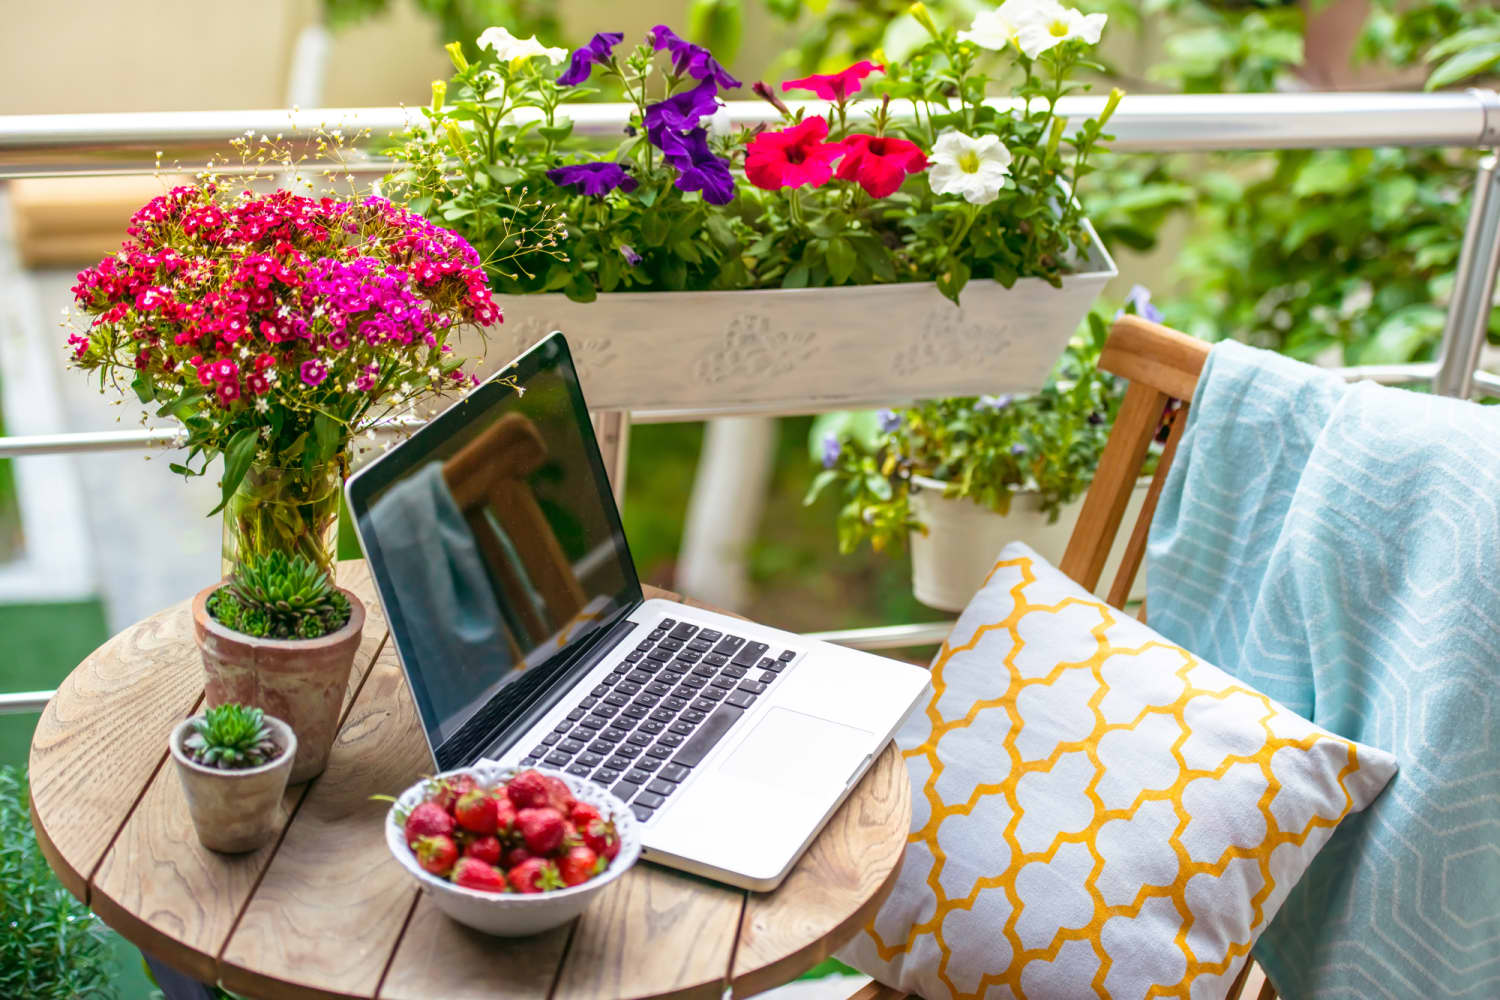 A Cardboard Box is All You Need to Comfortably Work Outside on Your Laptop